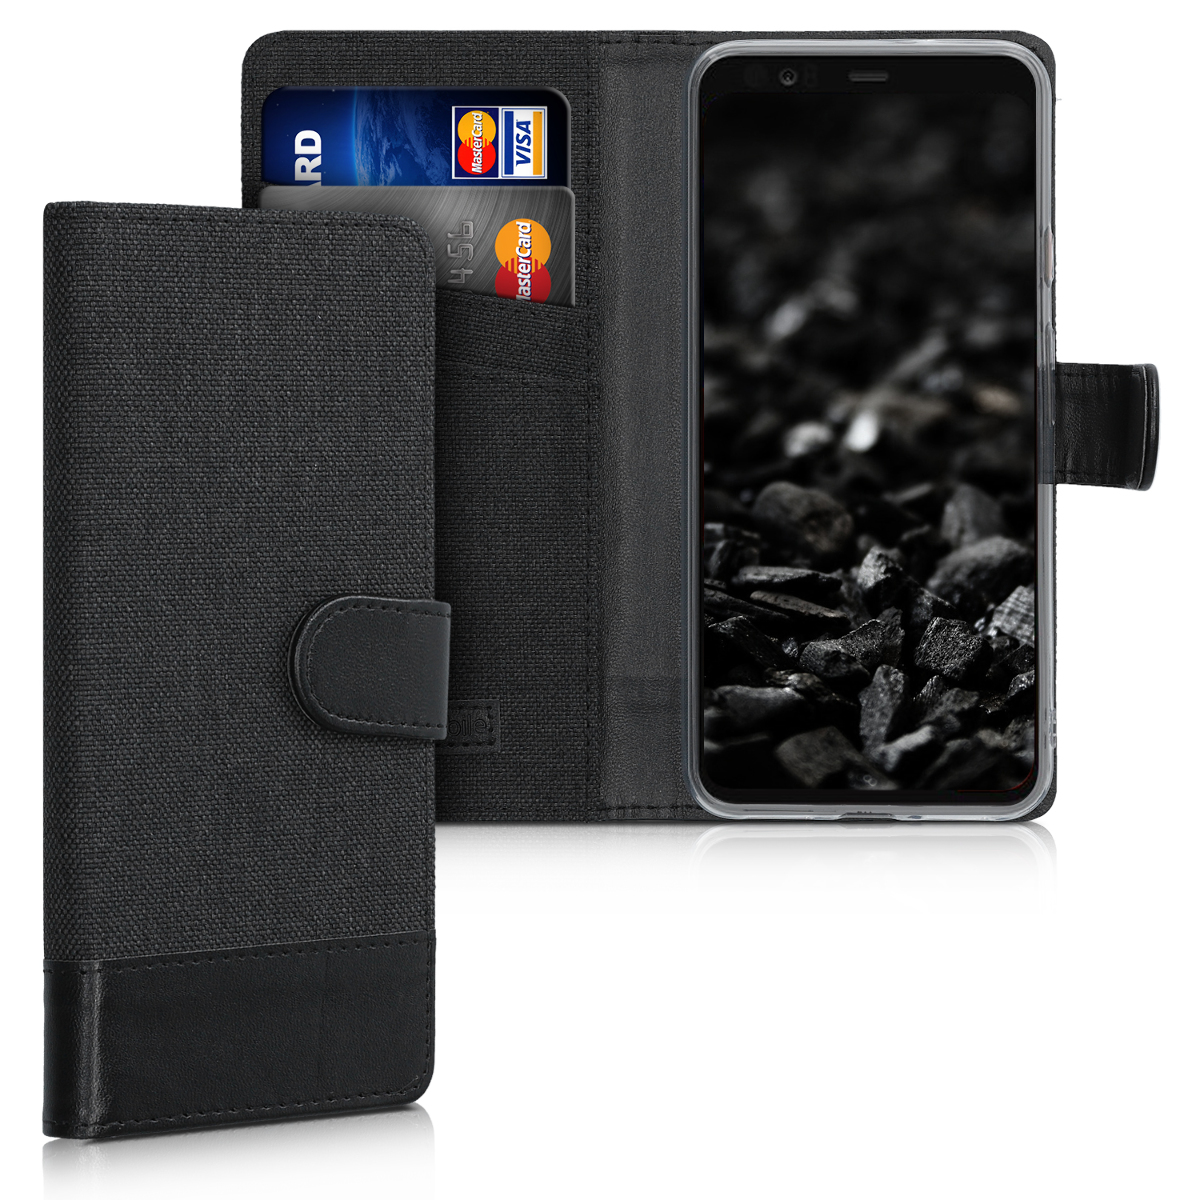 KW Θήκη - Πορτοφόλι Google Pixel 4 XL - Fabric and PU Leather Flip Cover - Anthracite / Black (50376.73)